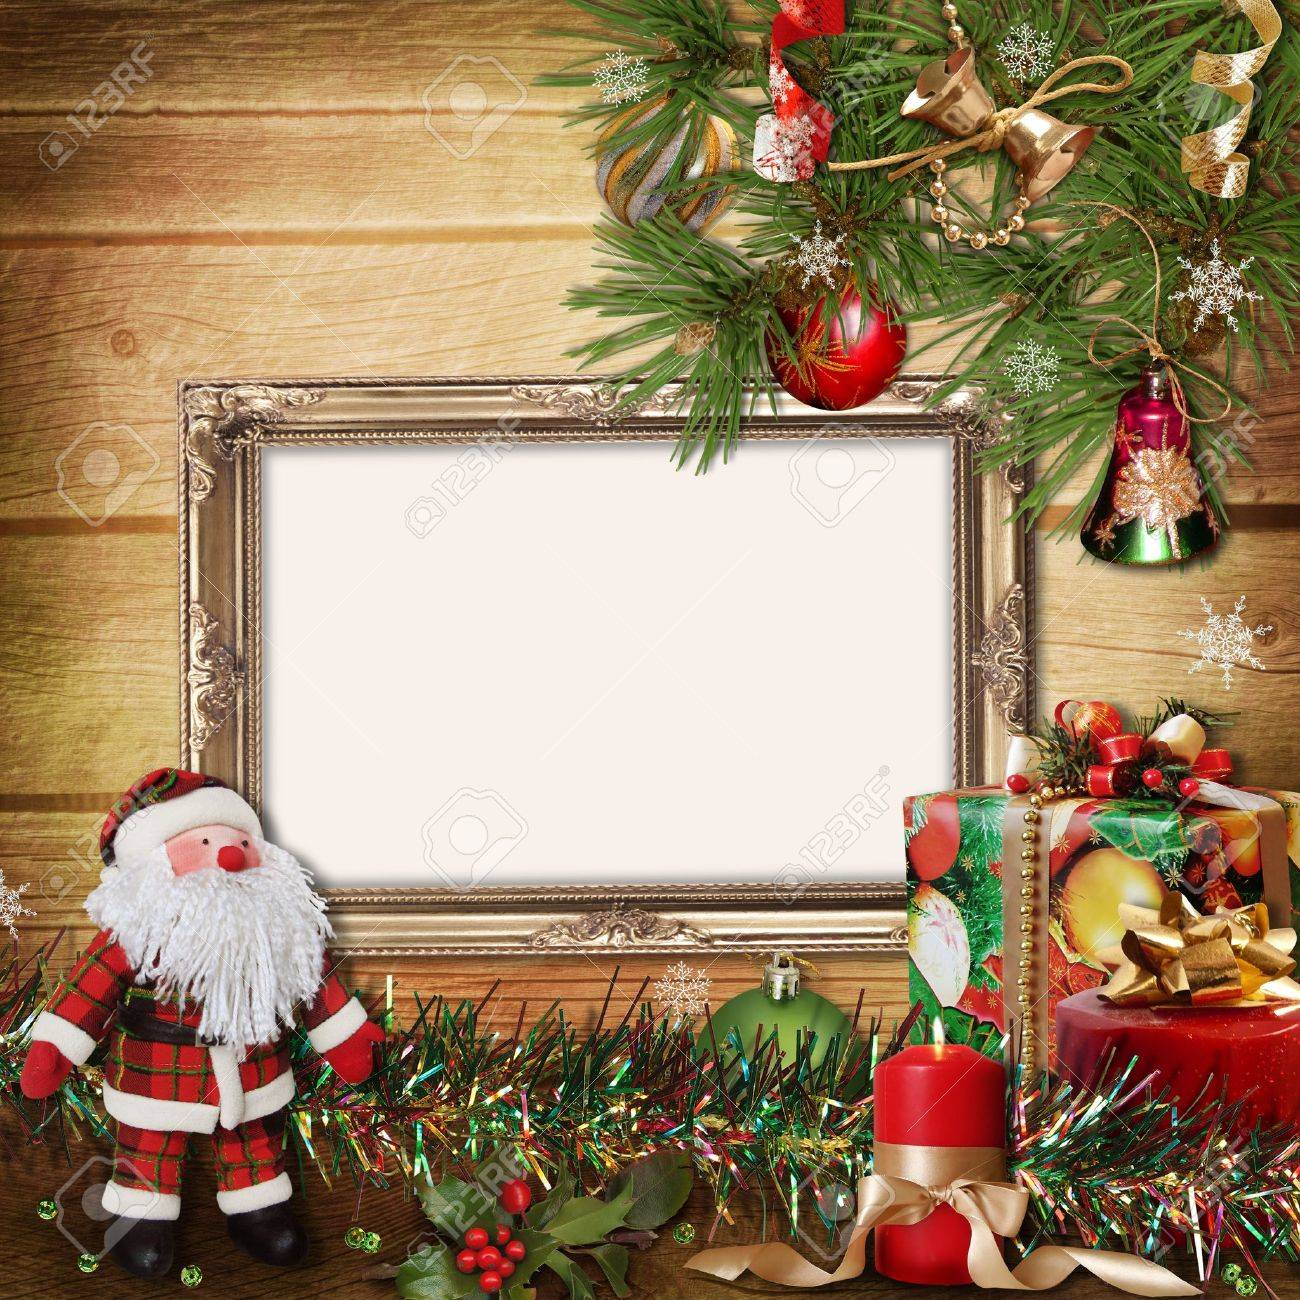 Christmas Greeting Card With Frames For A Family Stock Photo ...